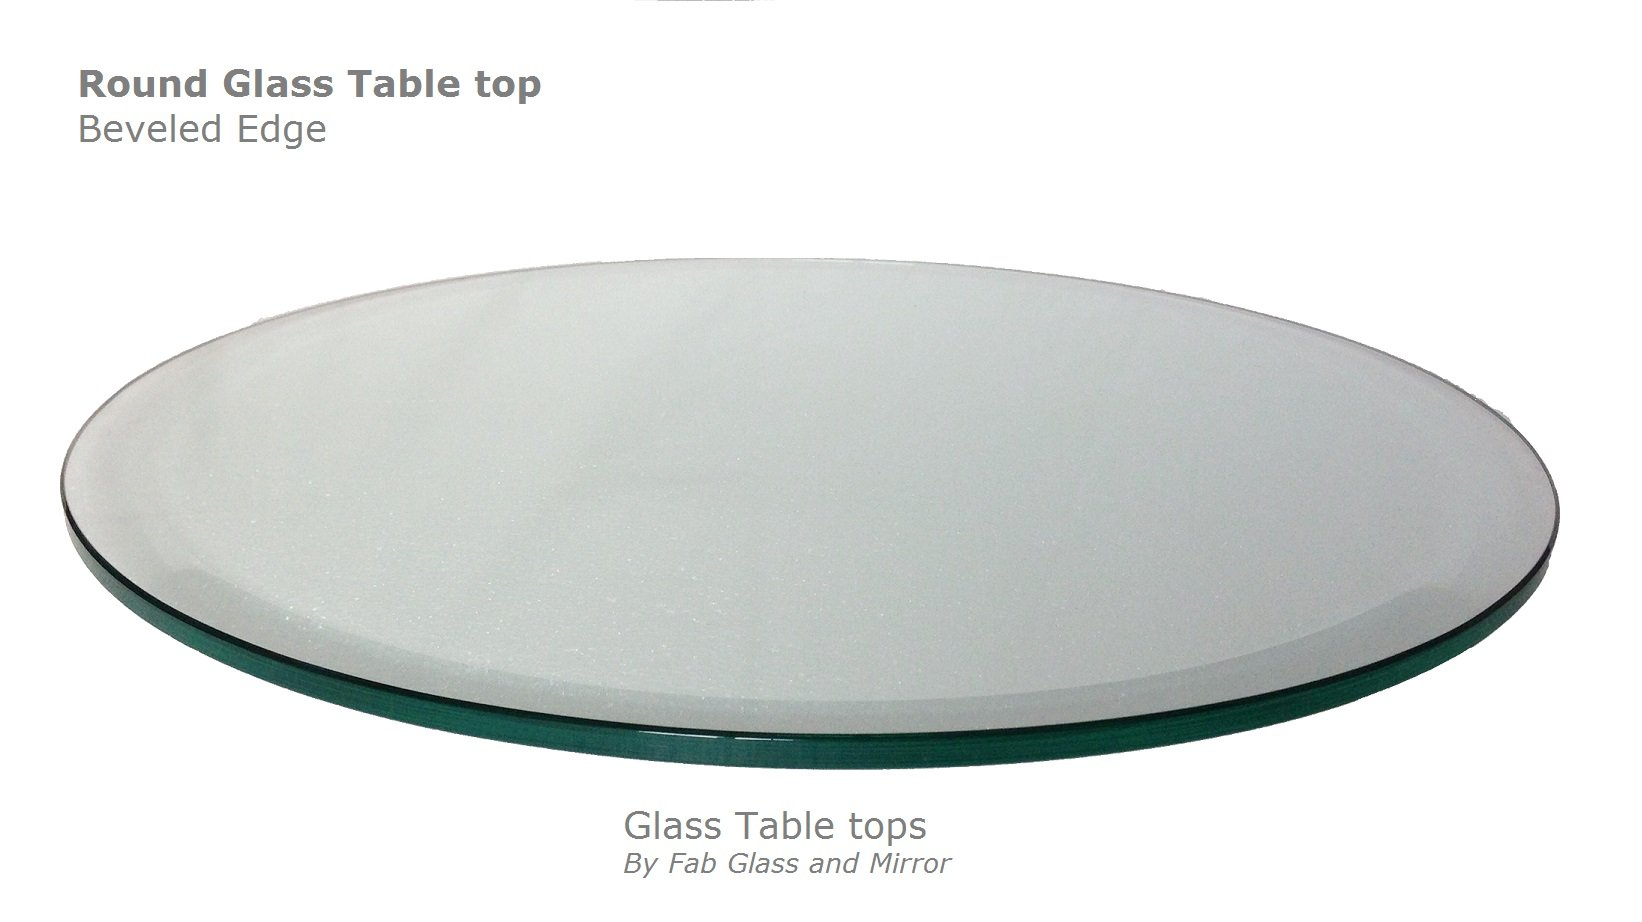 42'' Inch Round Glass Table Top 1/2'' Thick Tempered Beveled Edge by Fab Glass and Mirror by Fab Glass and Mirror (Image #2)